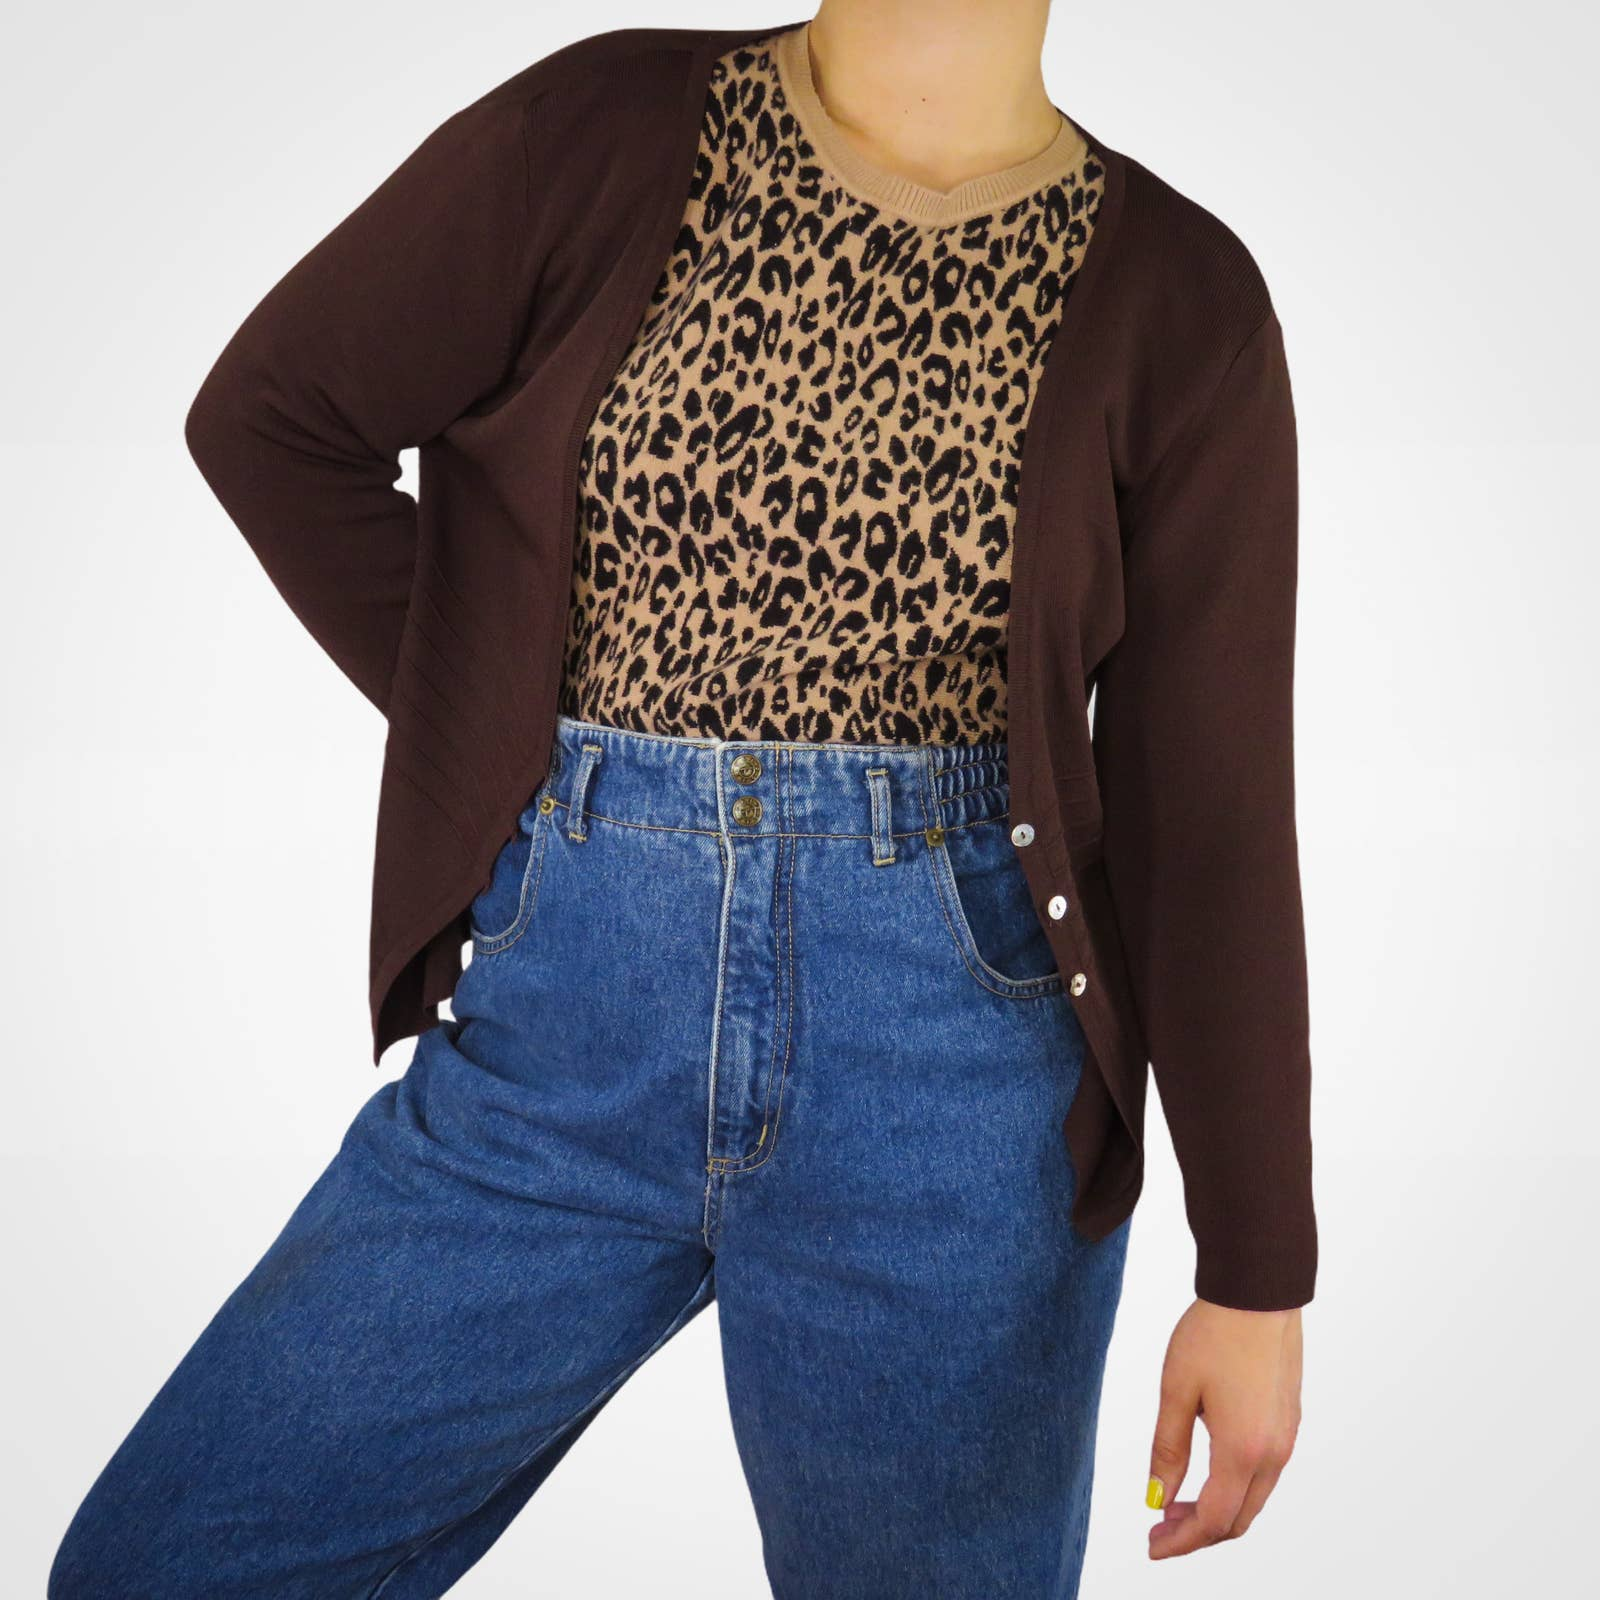 Product Image 1 - Y2k Cardigan. Brown Cardigan with